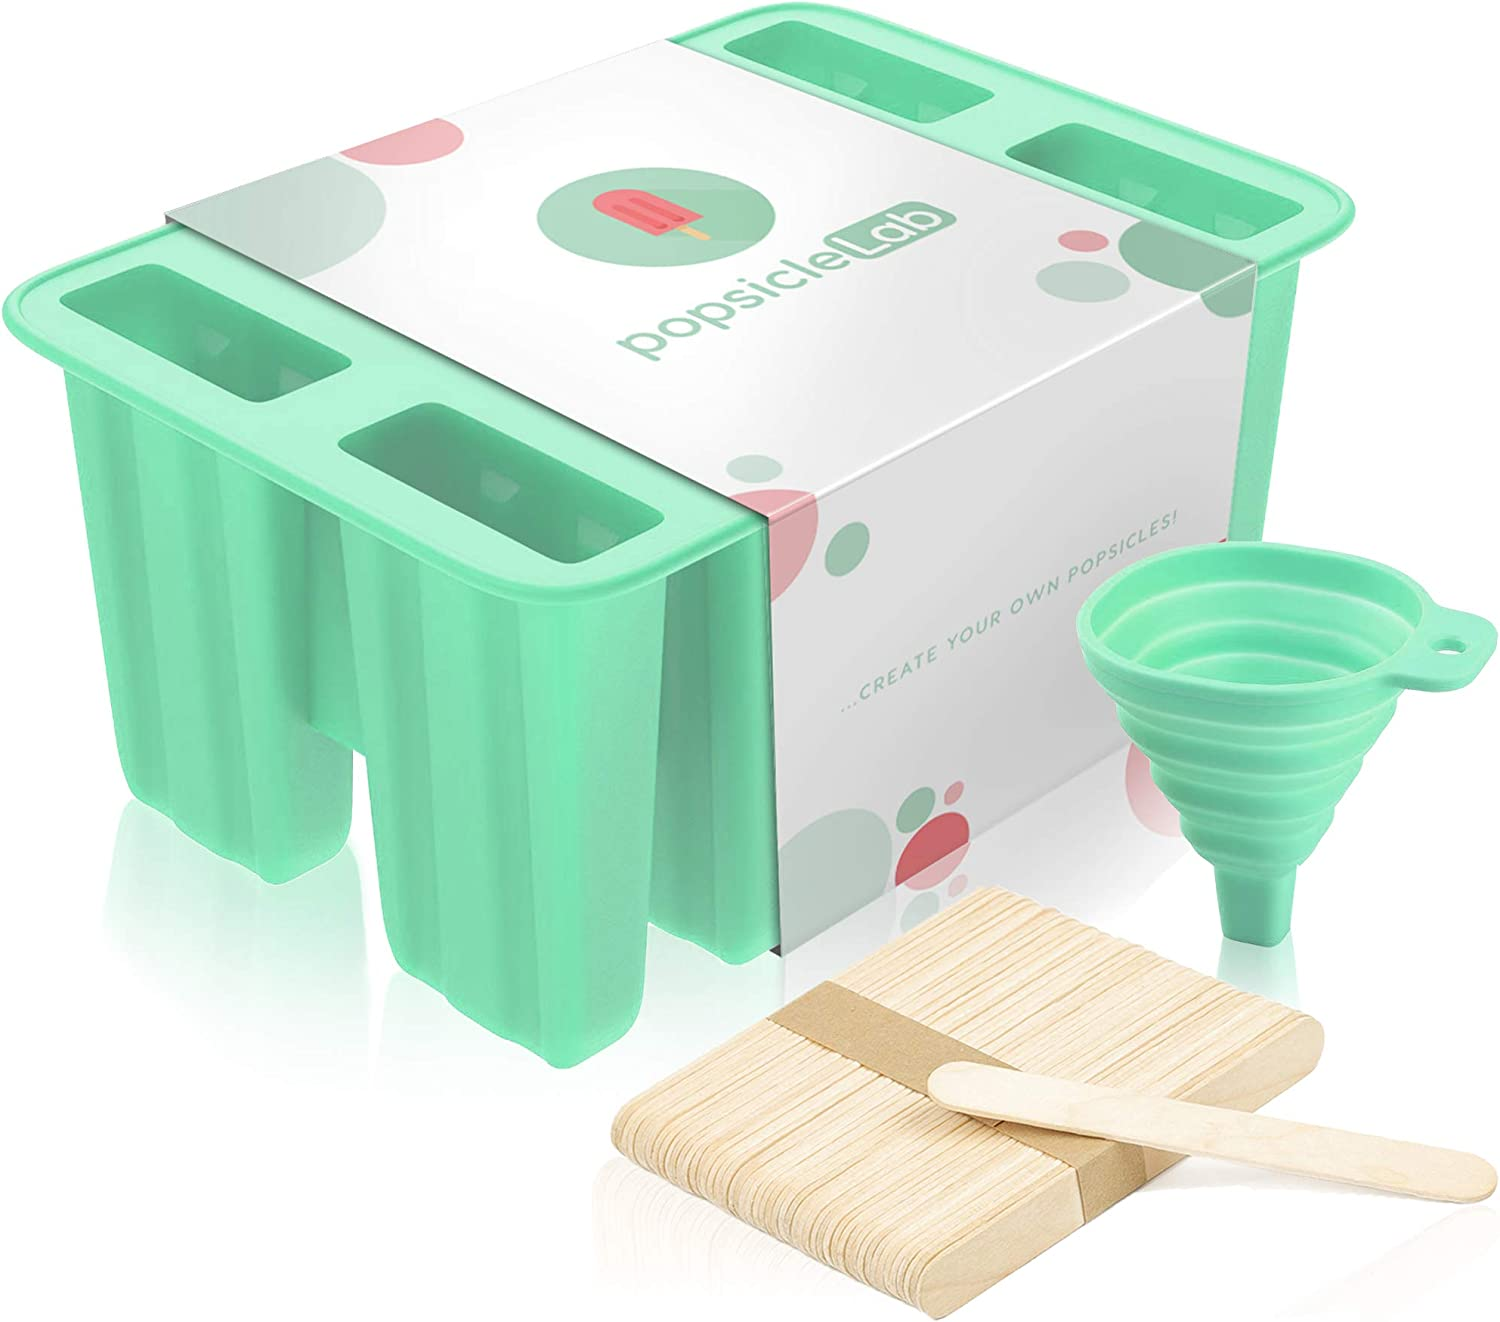 Premium Popsicle Molds, Food Grade BPA-Free Silicone, Homemade Frozen Popsicles, Ice Pops Shapes, Ice Pop Maker Trays with 50 Popsicle Sticks, 50 Popsicle Bags and Silicone Funnel (by popsicleLab)